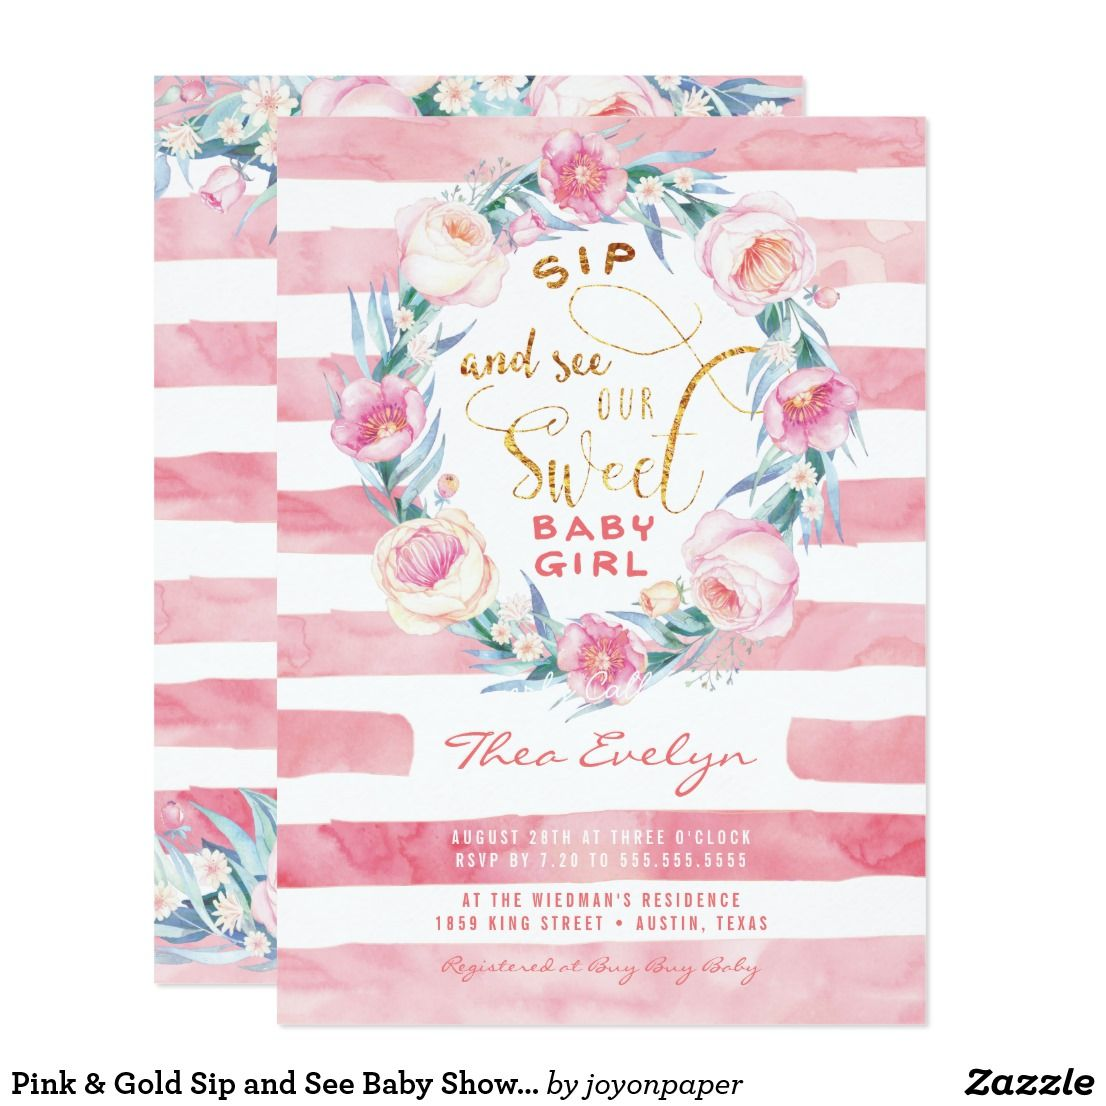 Pink & Gold Sip and See Baby Shower Invitations A Southern tradition ...